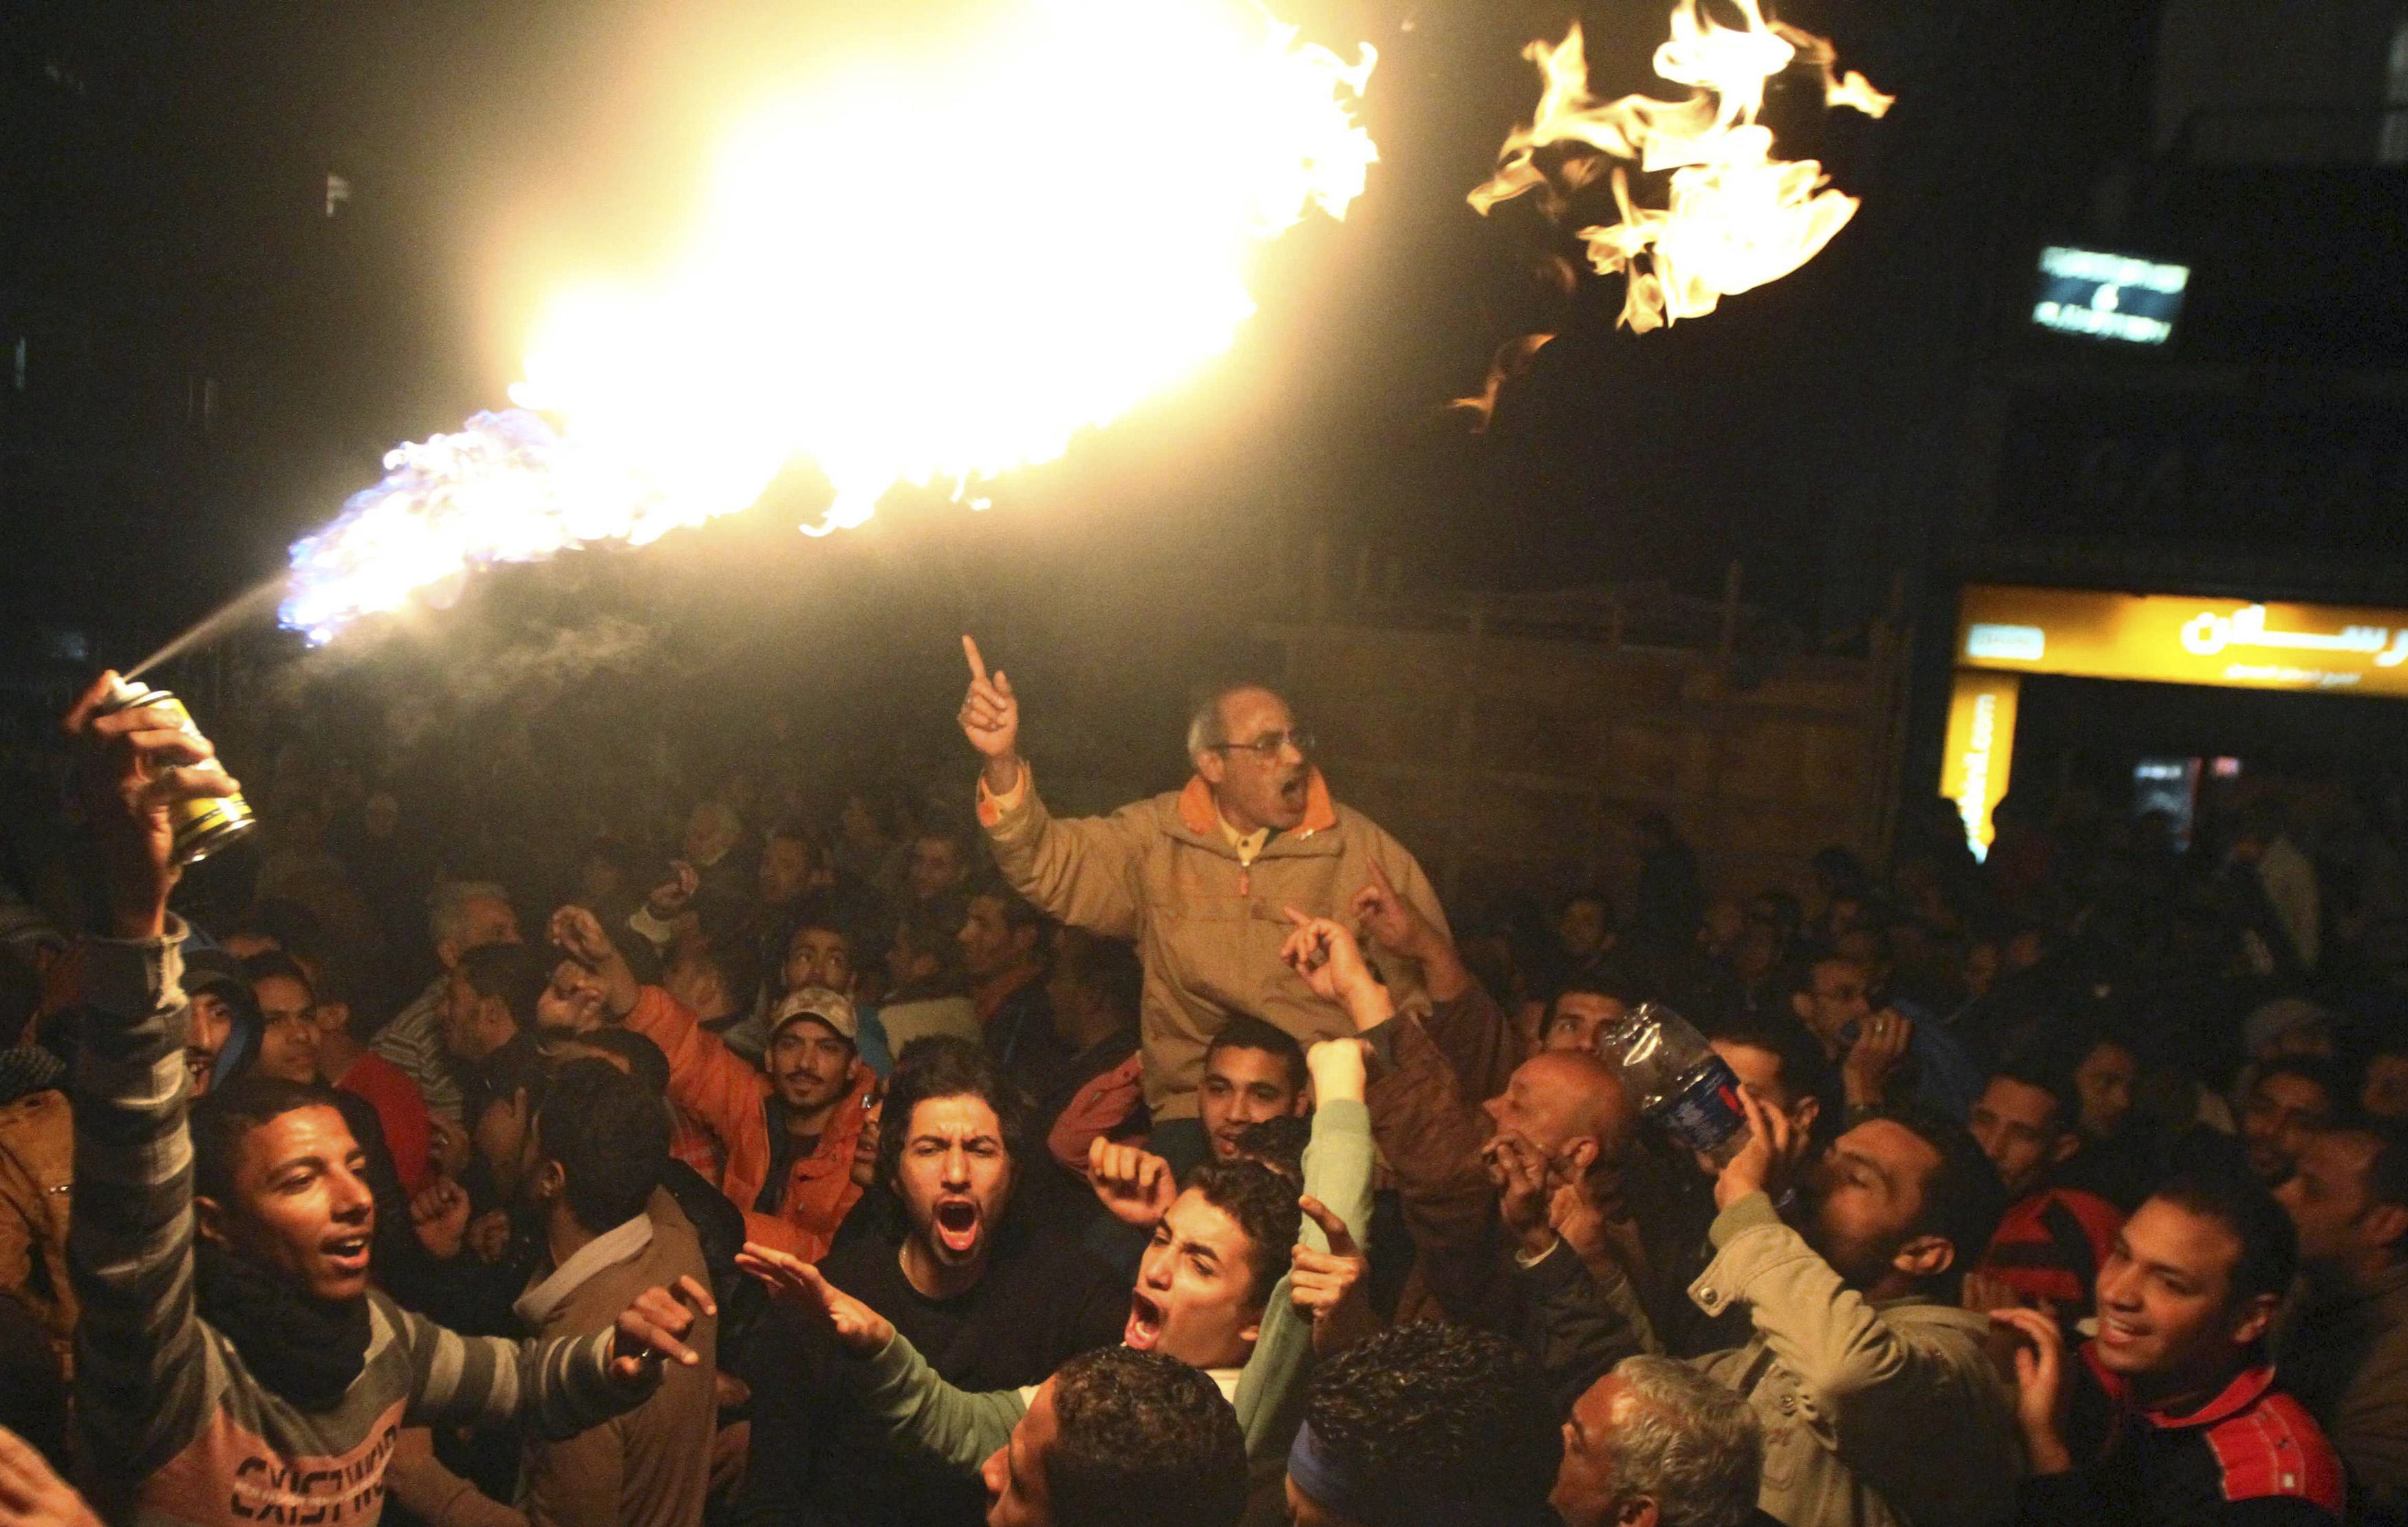 Update - Army warns unrest pushing Egypt to the brink